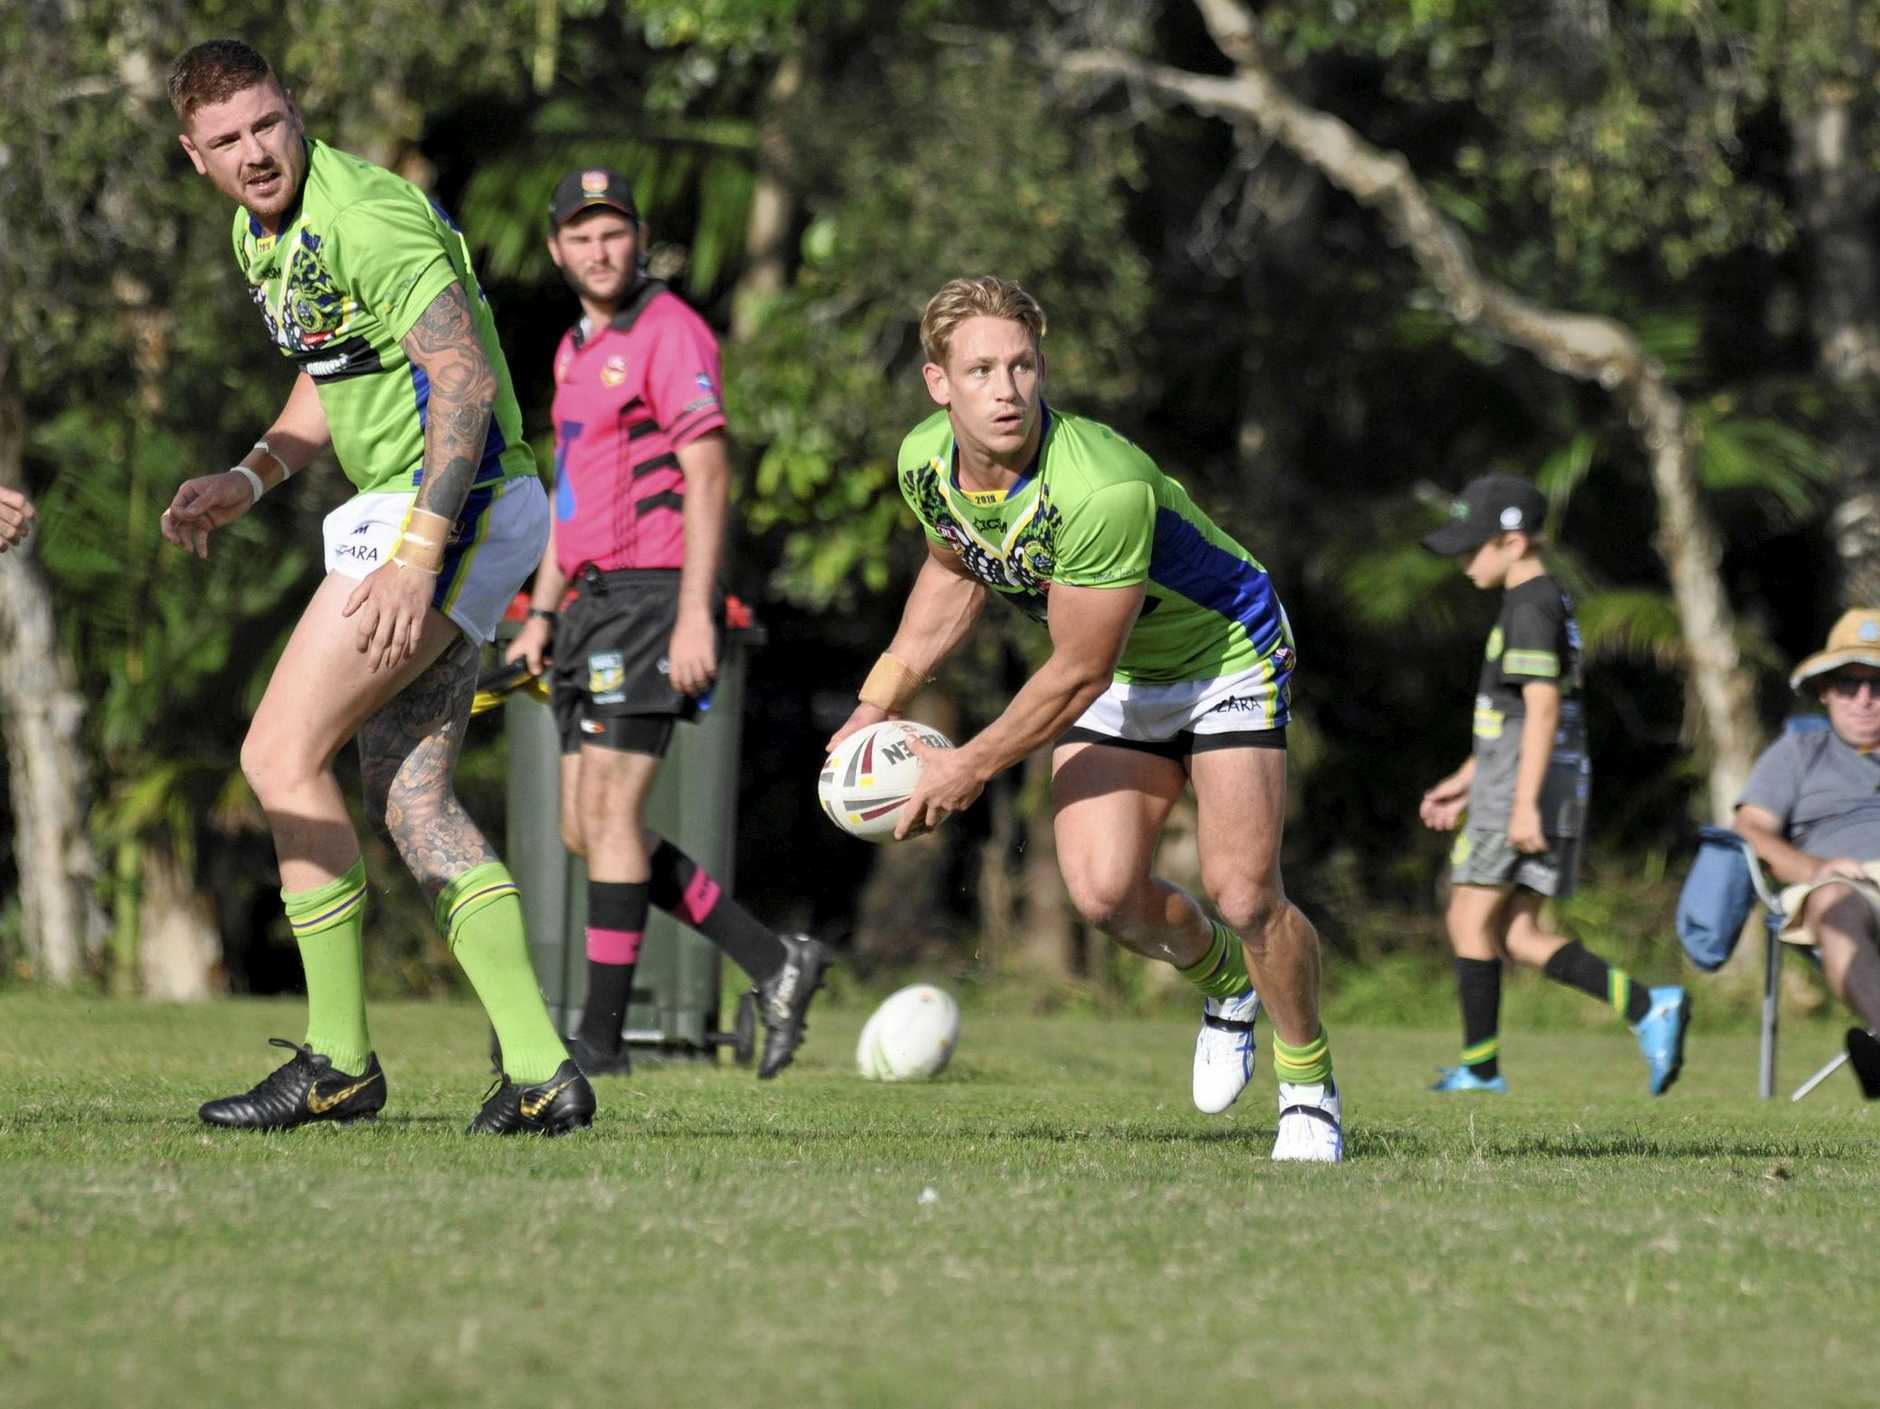 BOUNCE BACK: Tweed Coast Raiders player Dan Willoughby with the ball in his side's loss to Ballina.